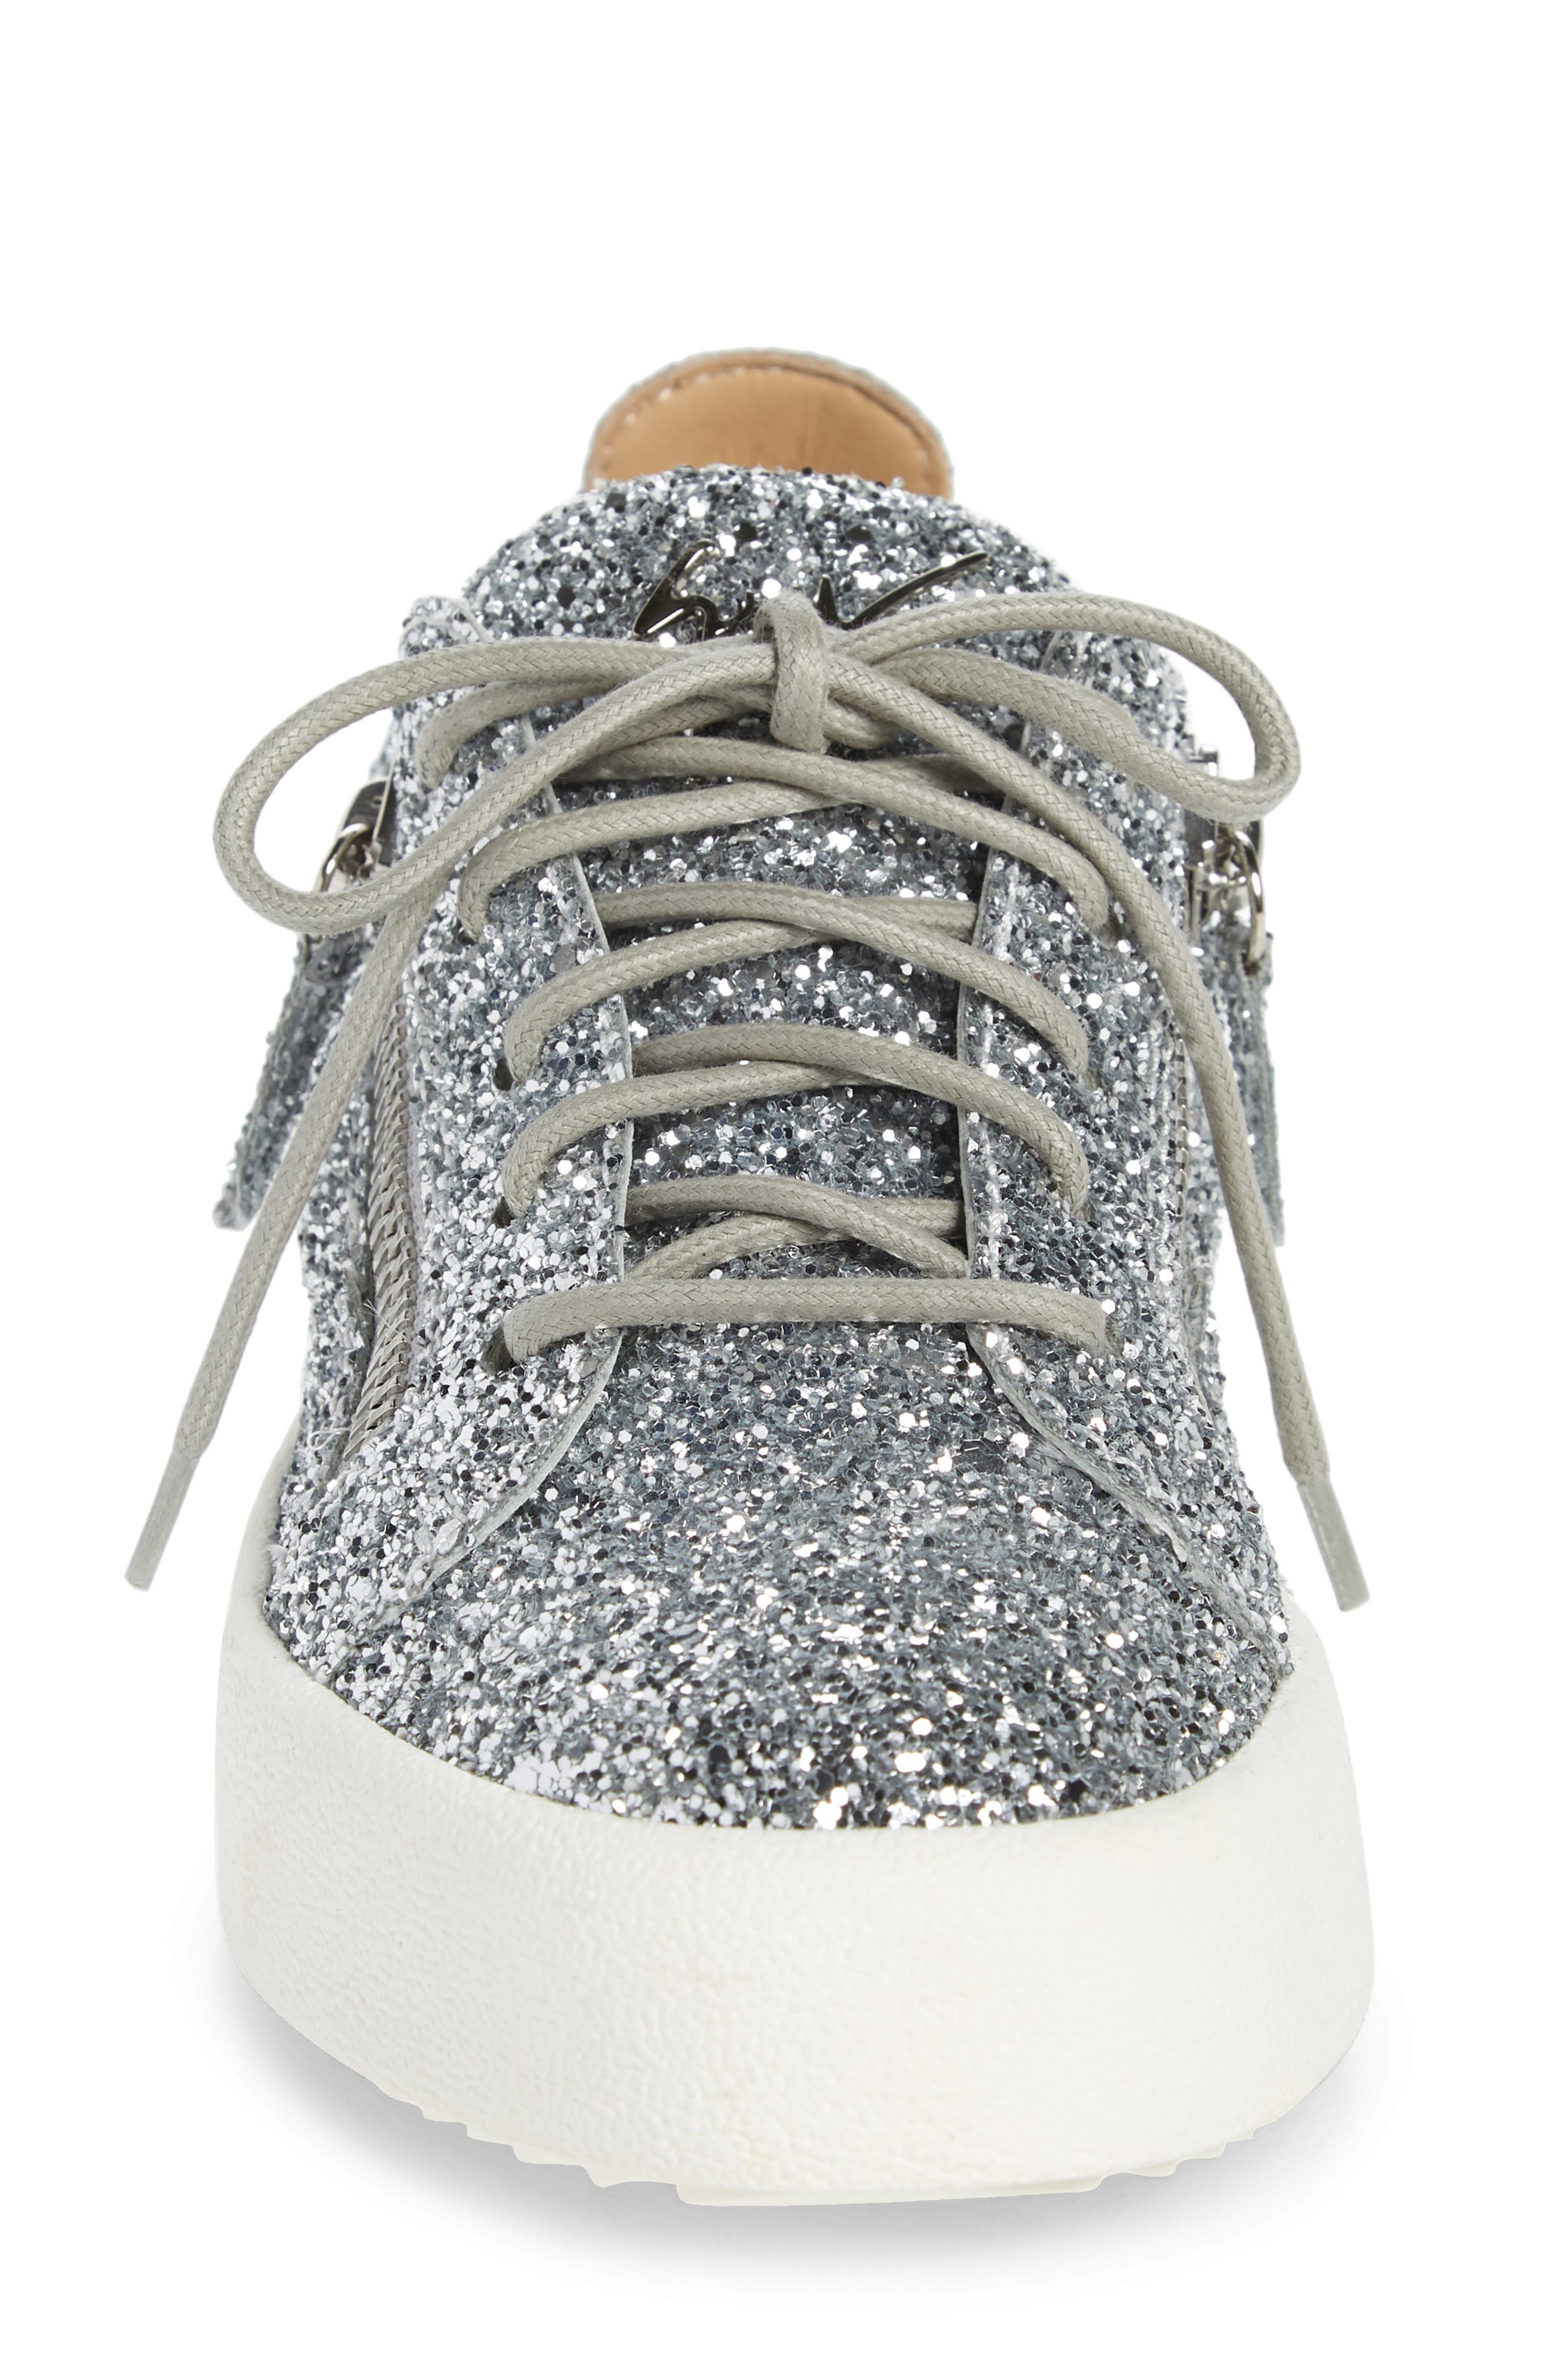 May London Low Top Sneaker,                             Alternate thumbnail 4, color,                             SILVER GLITTER